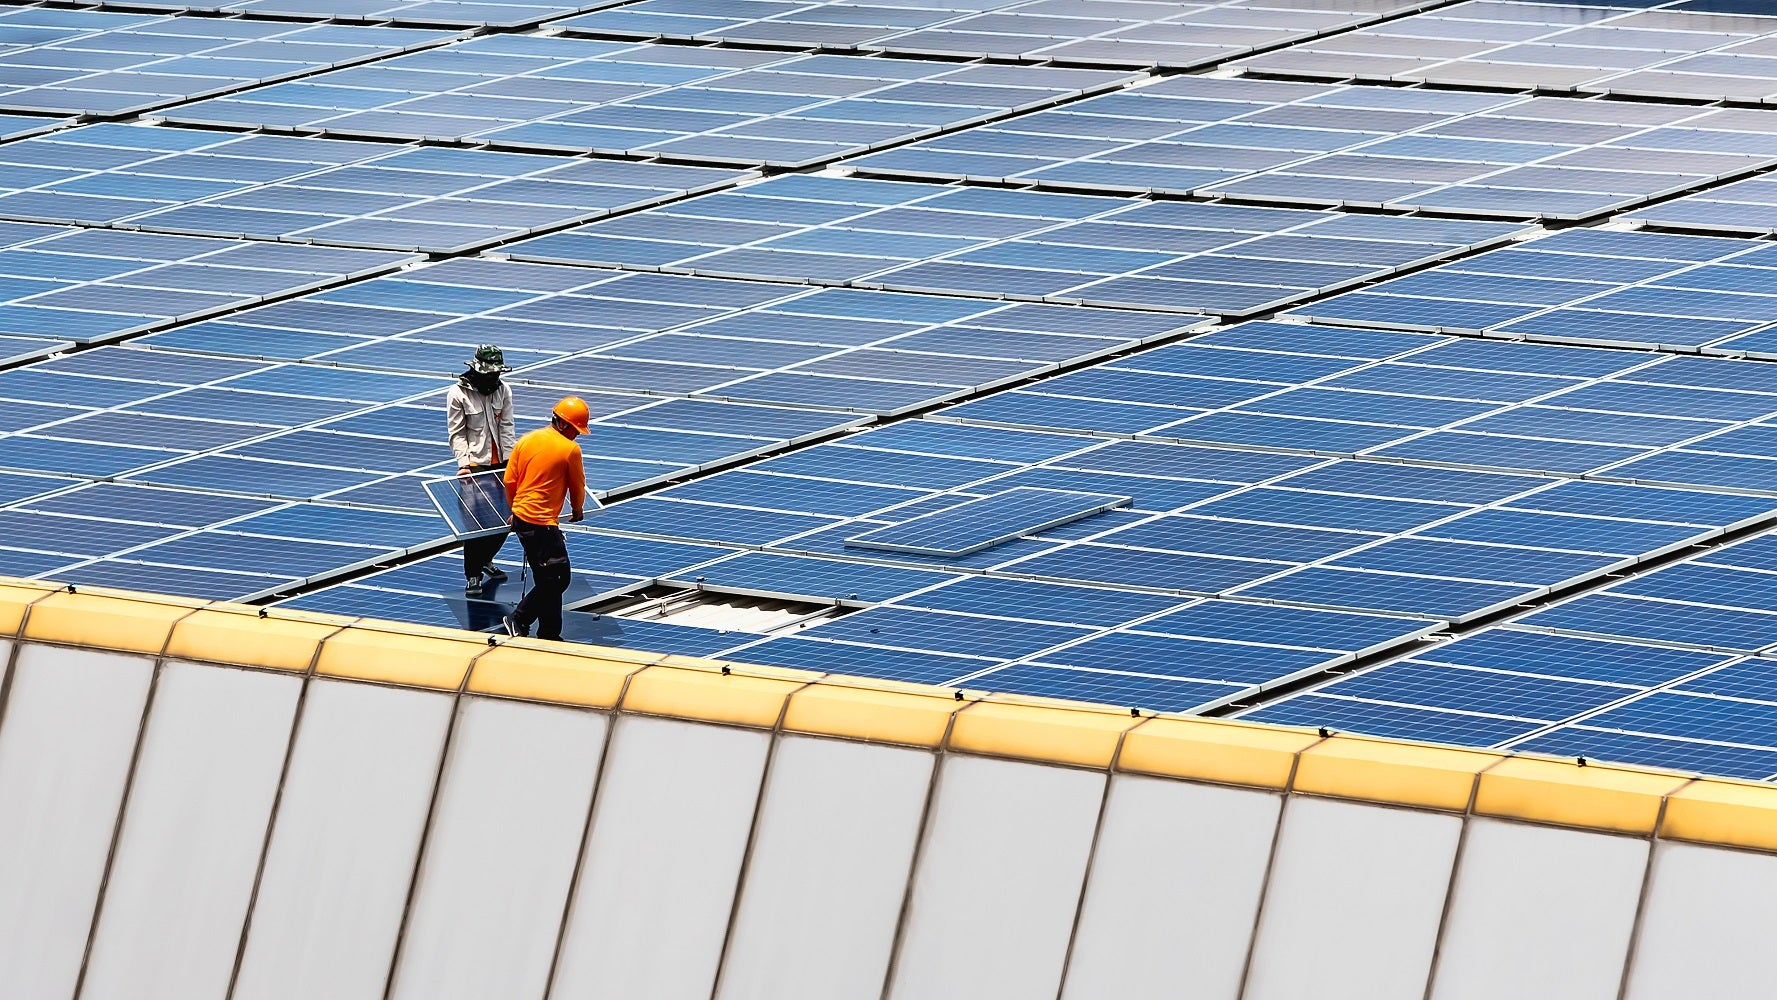 These Solar Stocks Have Plummeted: 3 Reasons You Should Buy Now